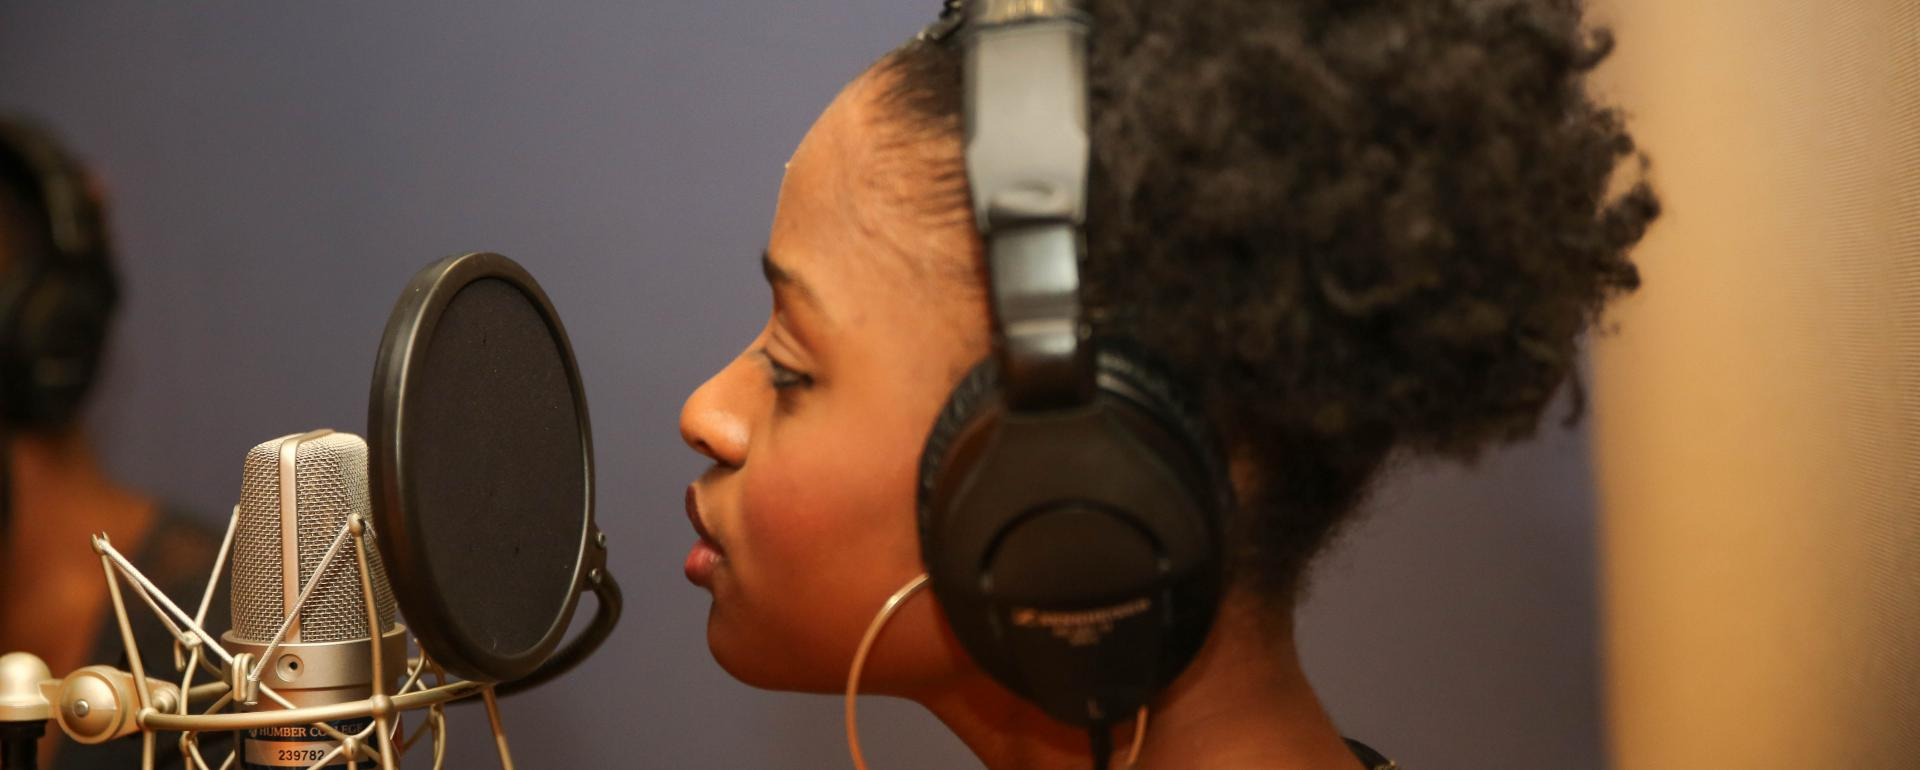 Woman singing into a microphone while wearing headphones